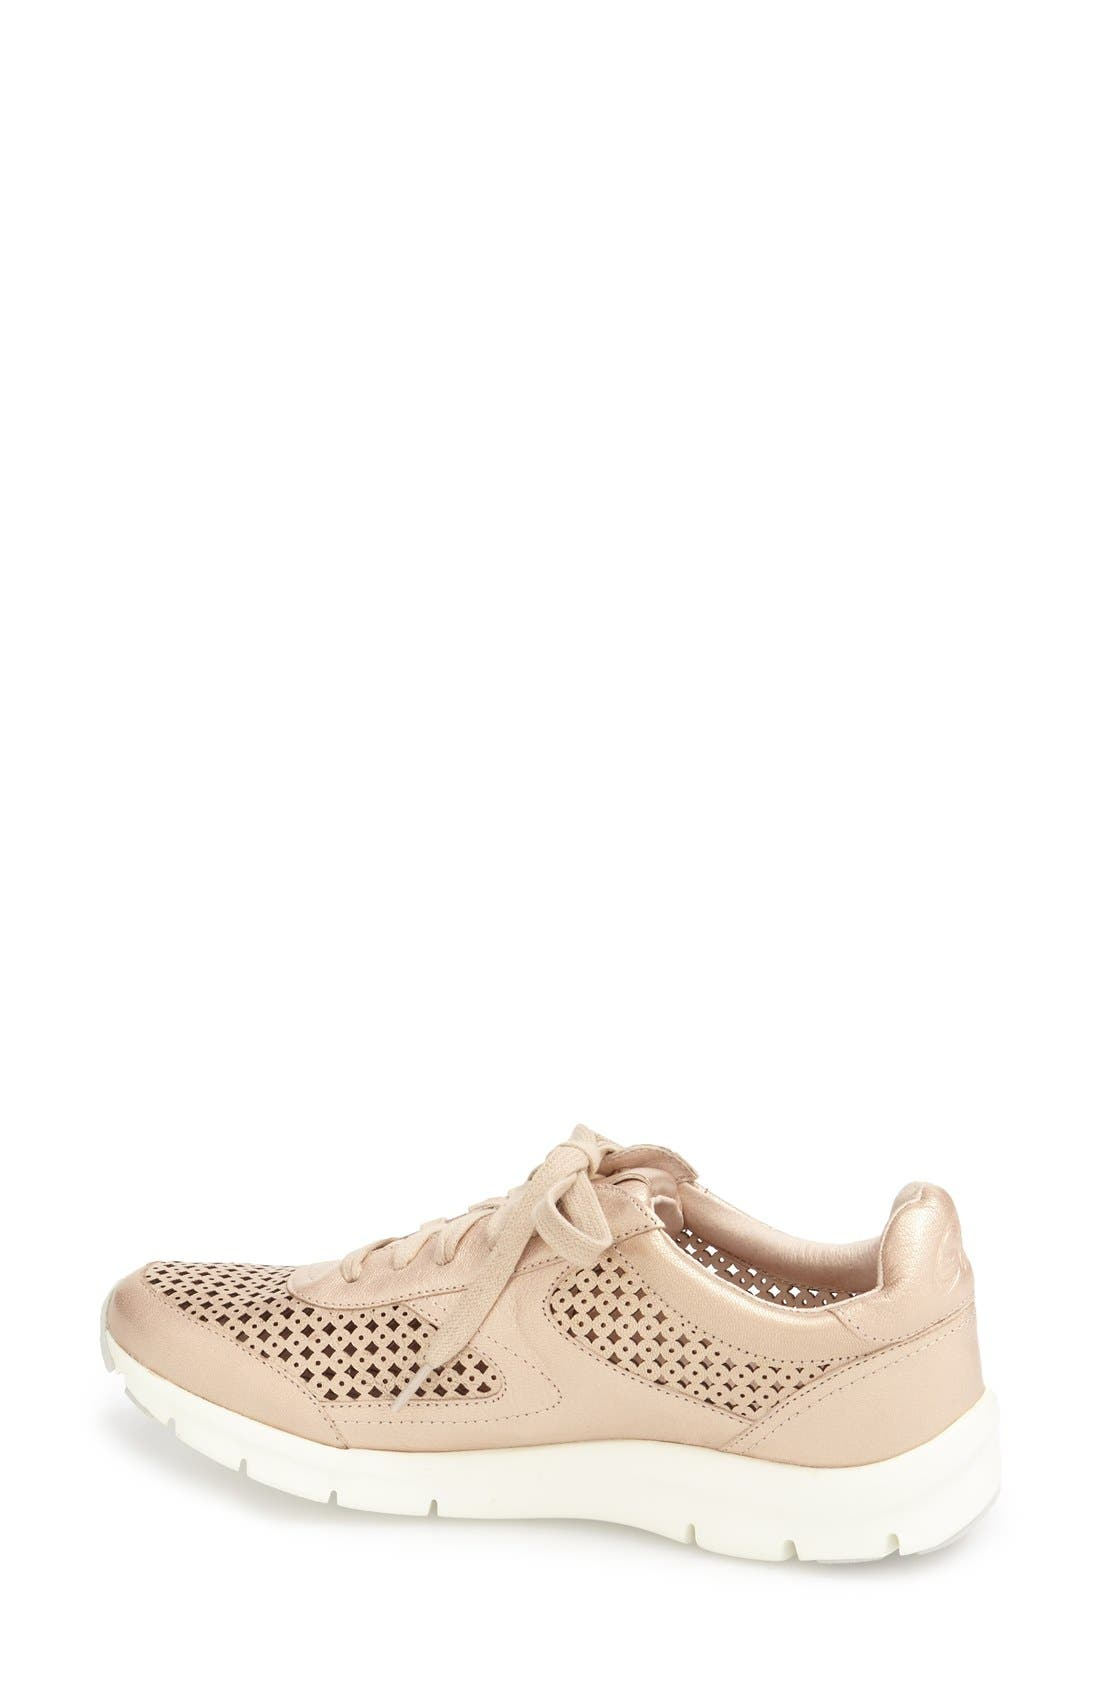 'Tammi' Perforated Leather Sneaker,                             Alternate thumbnail 2, color,                             250